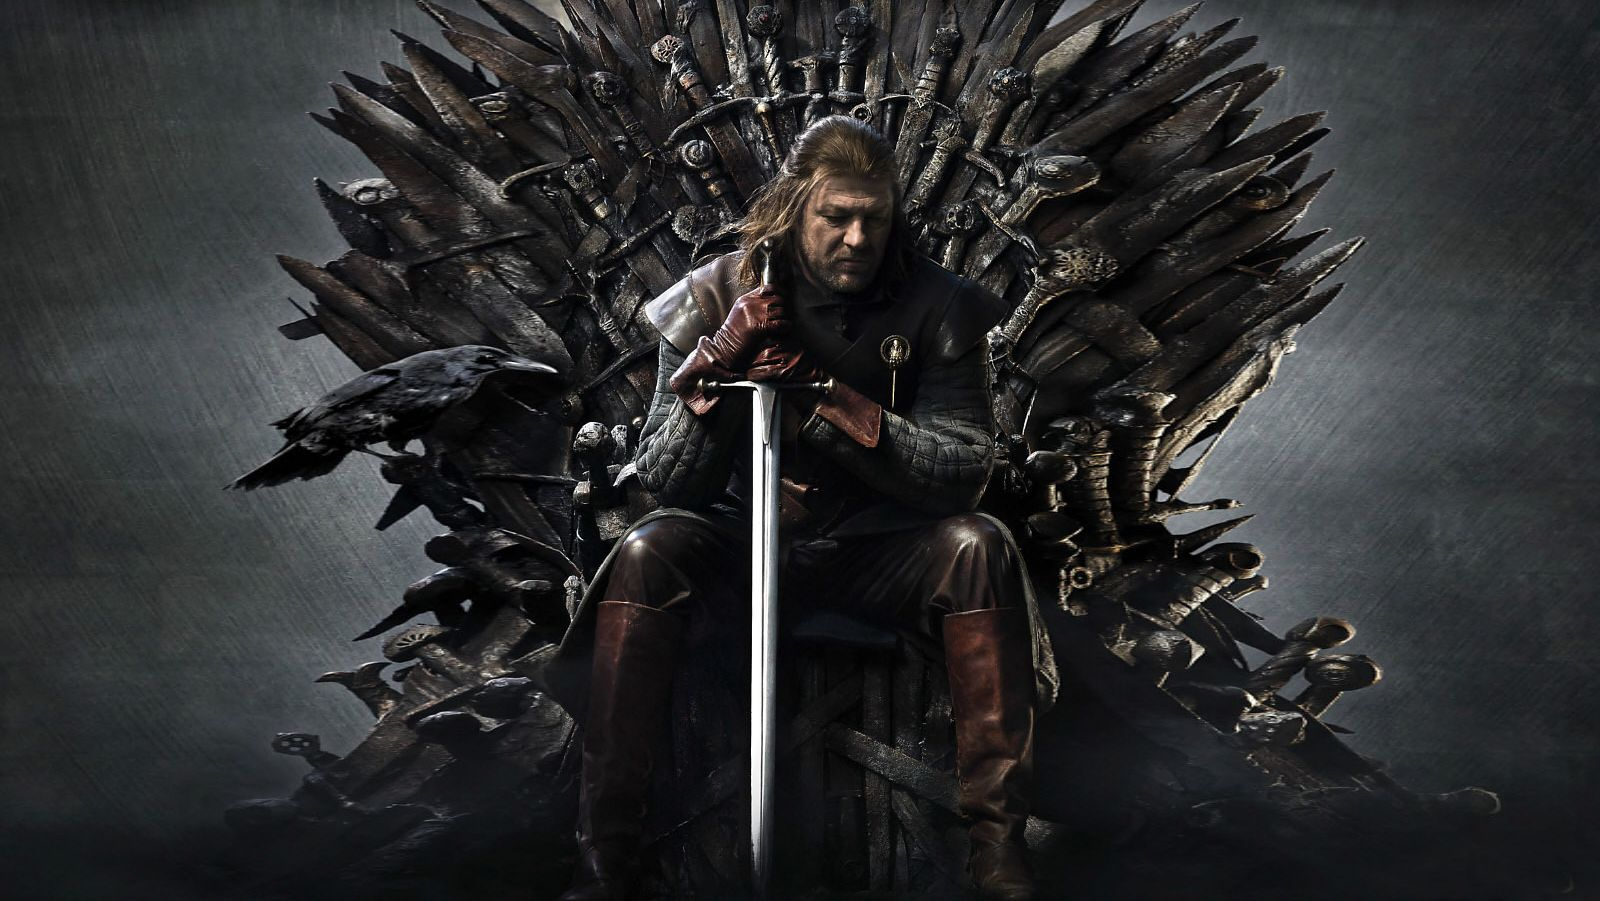 Game of Thrones comes to China as Tencent ties up with HBO